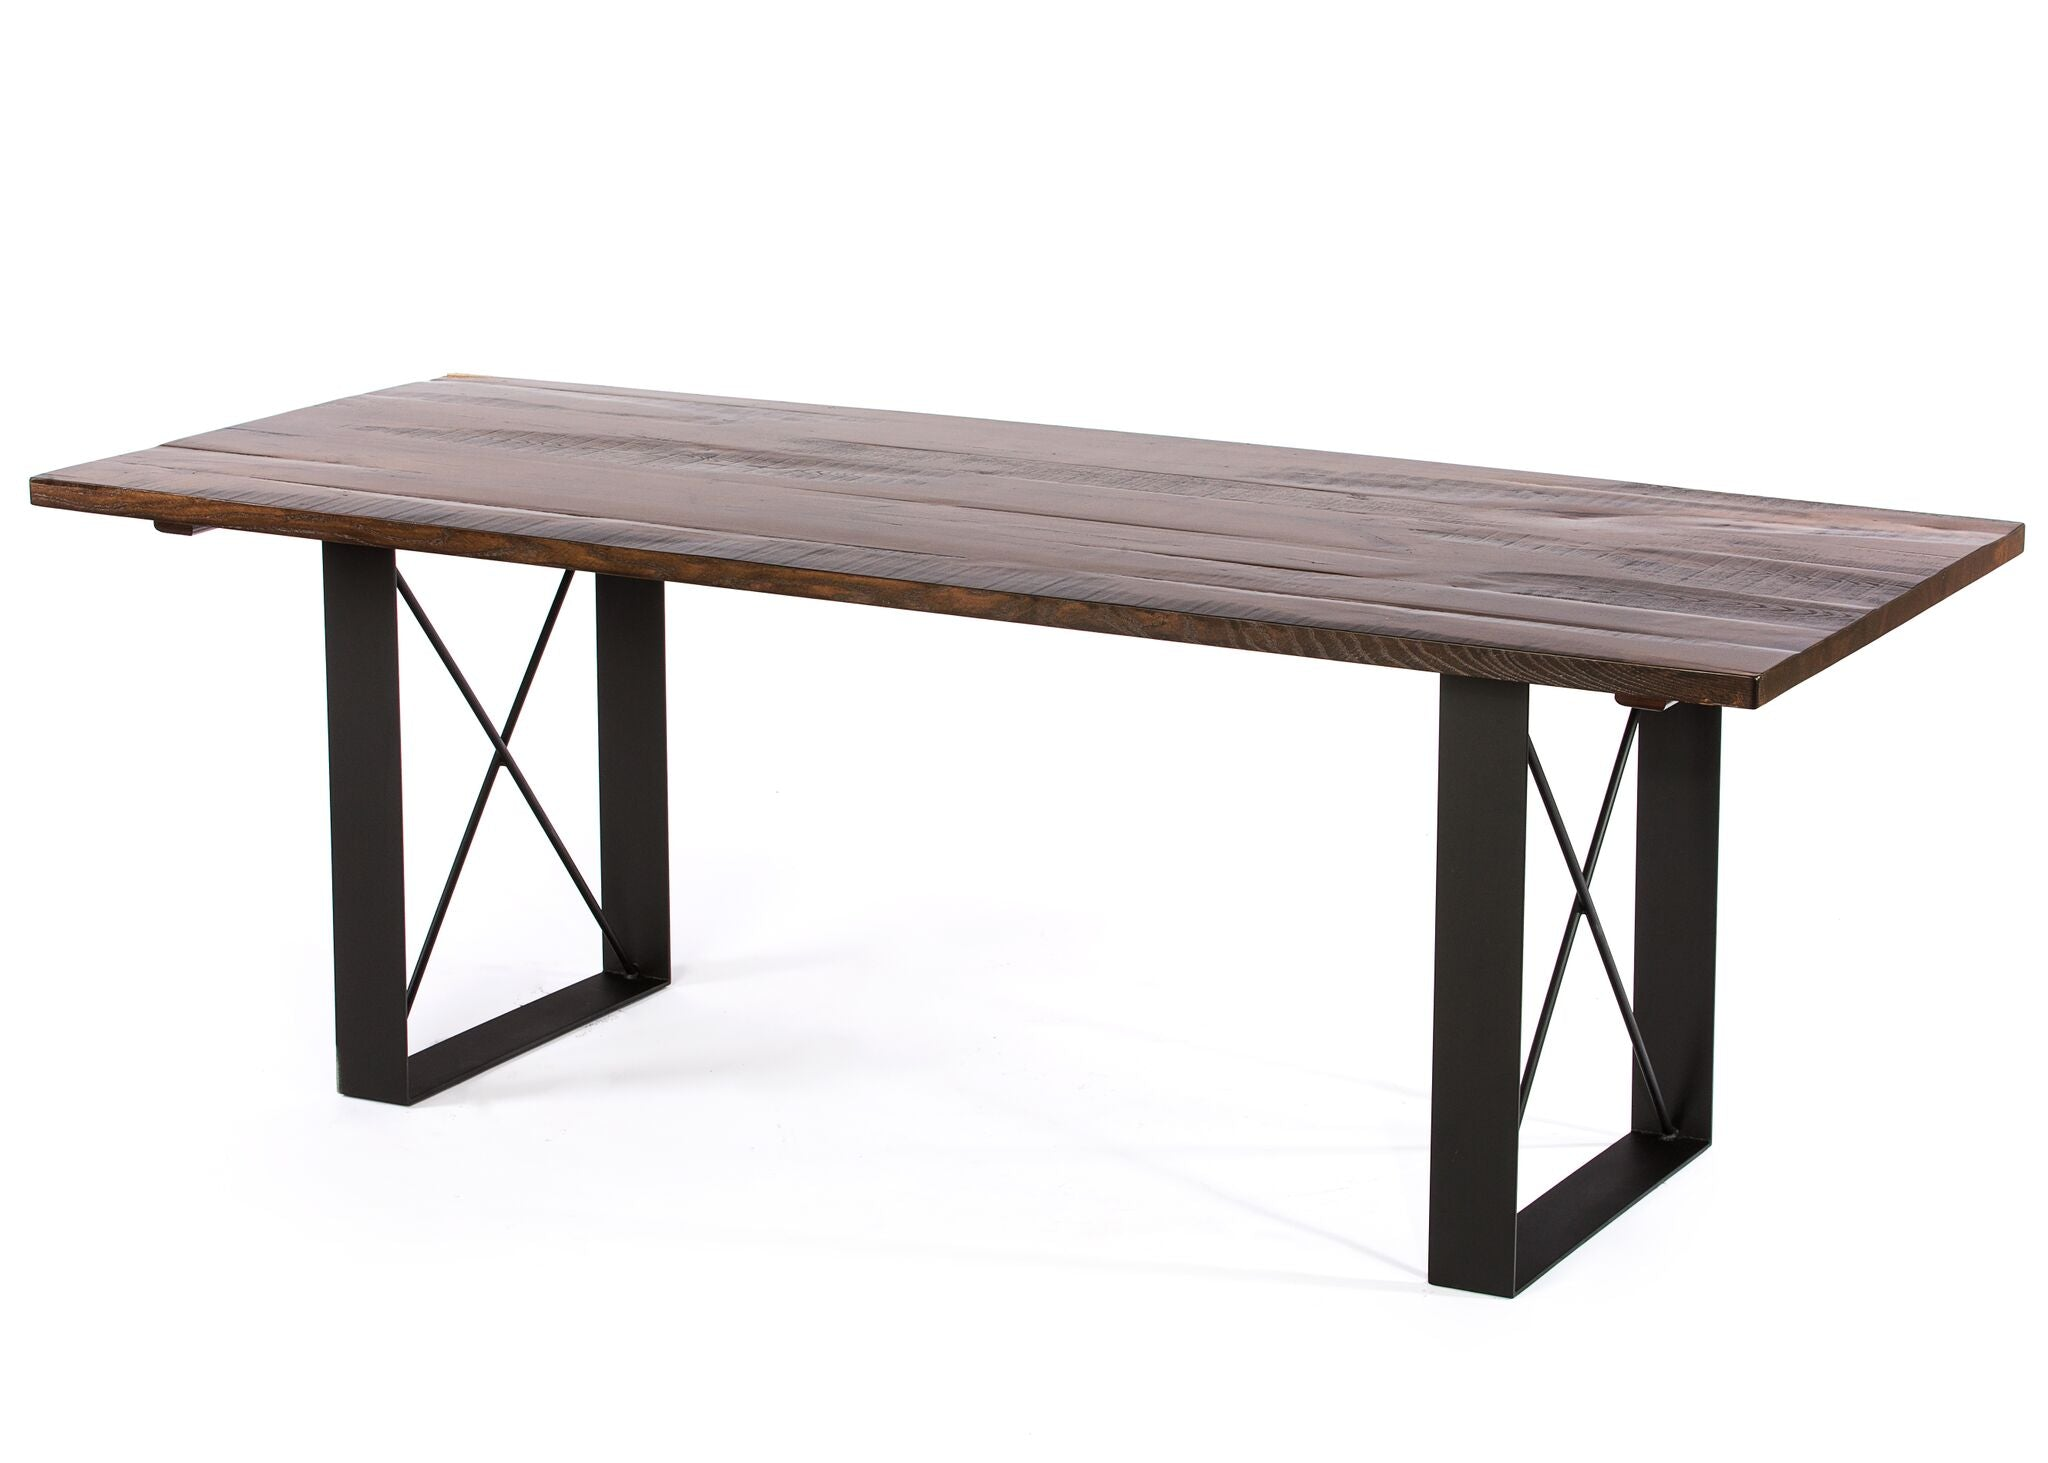 Wood Tables | Soho Table | Natural Ash | Natural Steel | CUSTOM SIZE L 60 W 30 H 29 | kingston-krafts-zinc-tables.